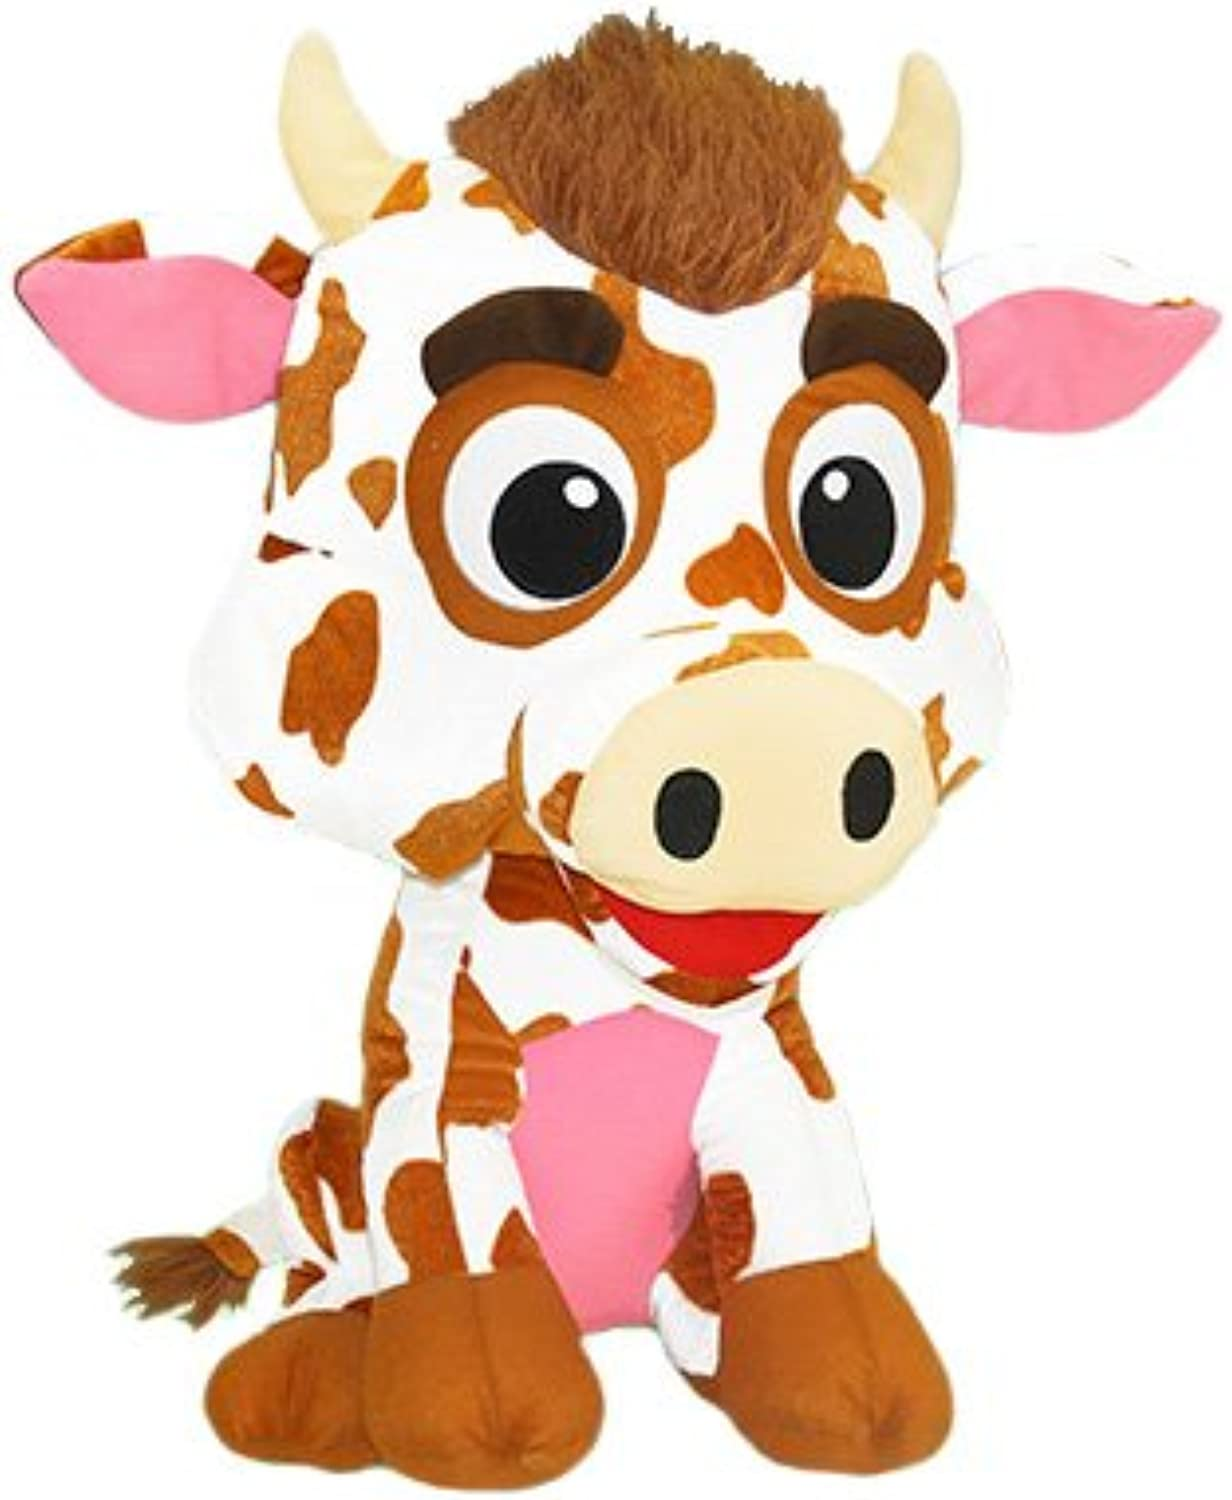 ToySource 6635 Mabelle The Cow Collectible Plush, Brown Spotted, Size 26